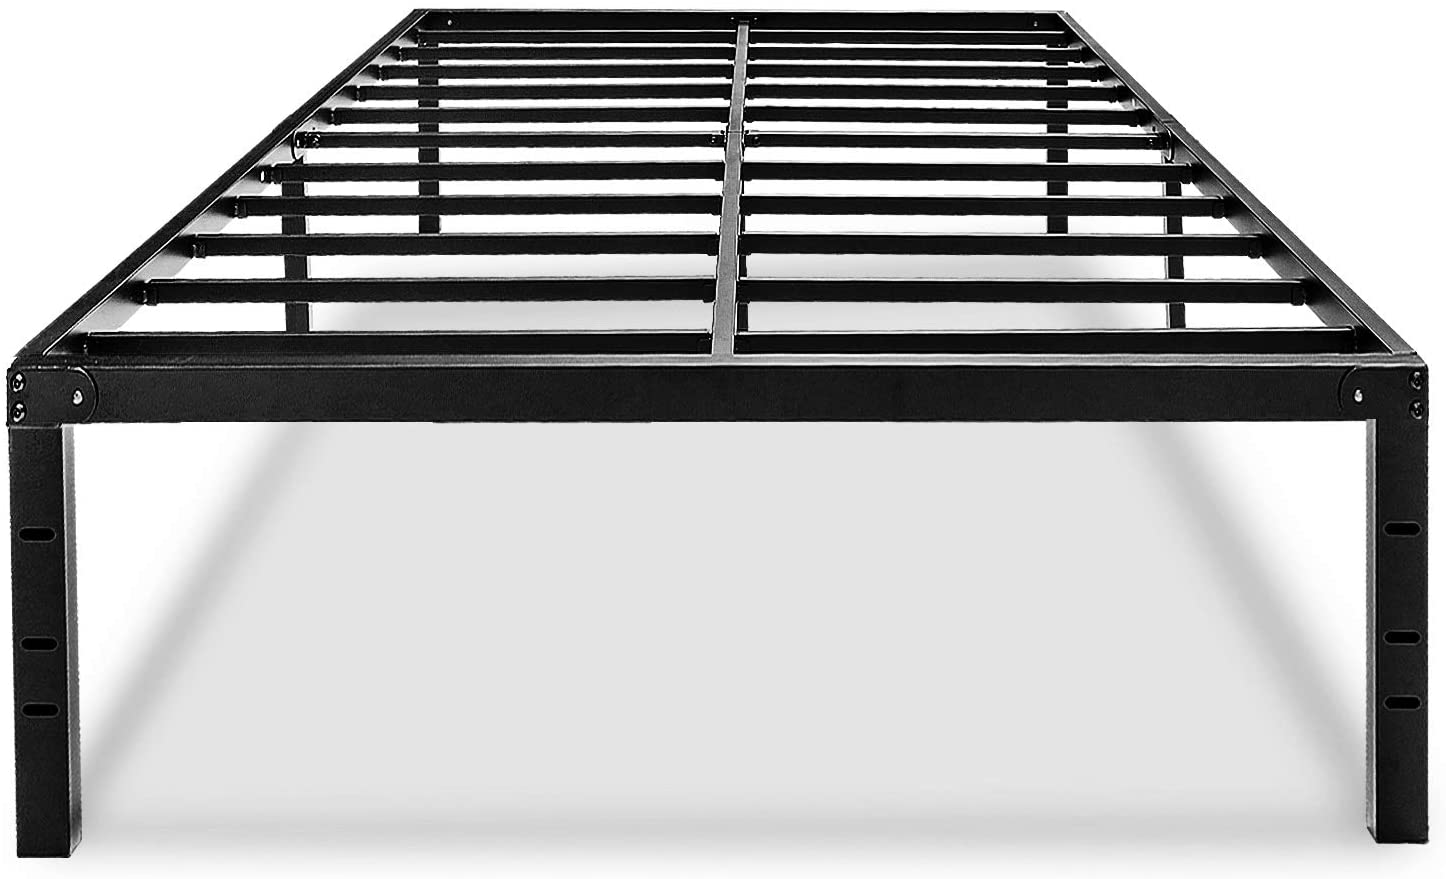 Full Size Bed Frame 18 Inch Tall Platform Bedframe No Box Spring Needed High With Storage Metal